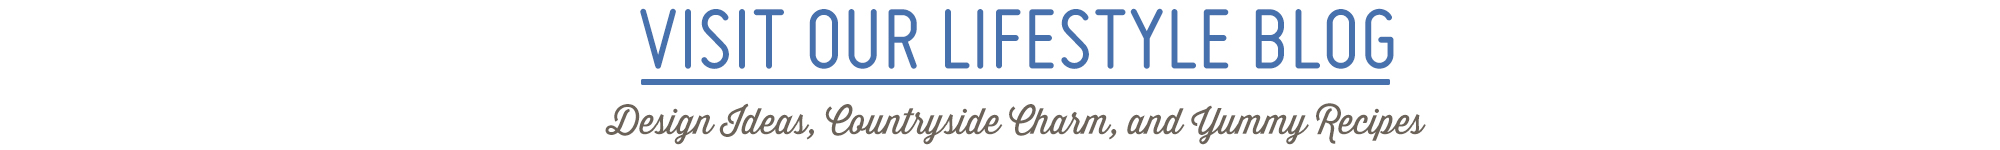 Cracker Barrel Lifestyle Blog - banner 5